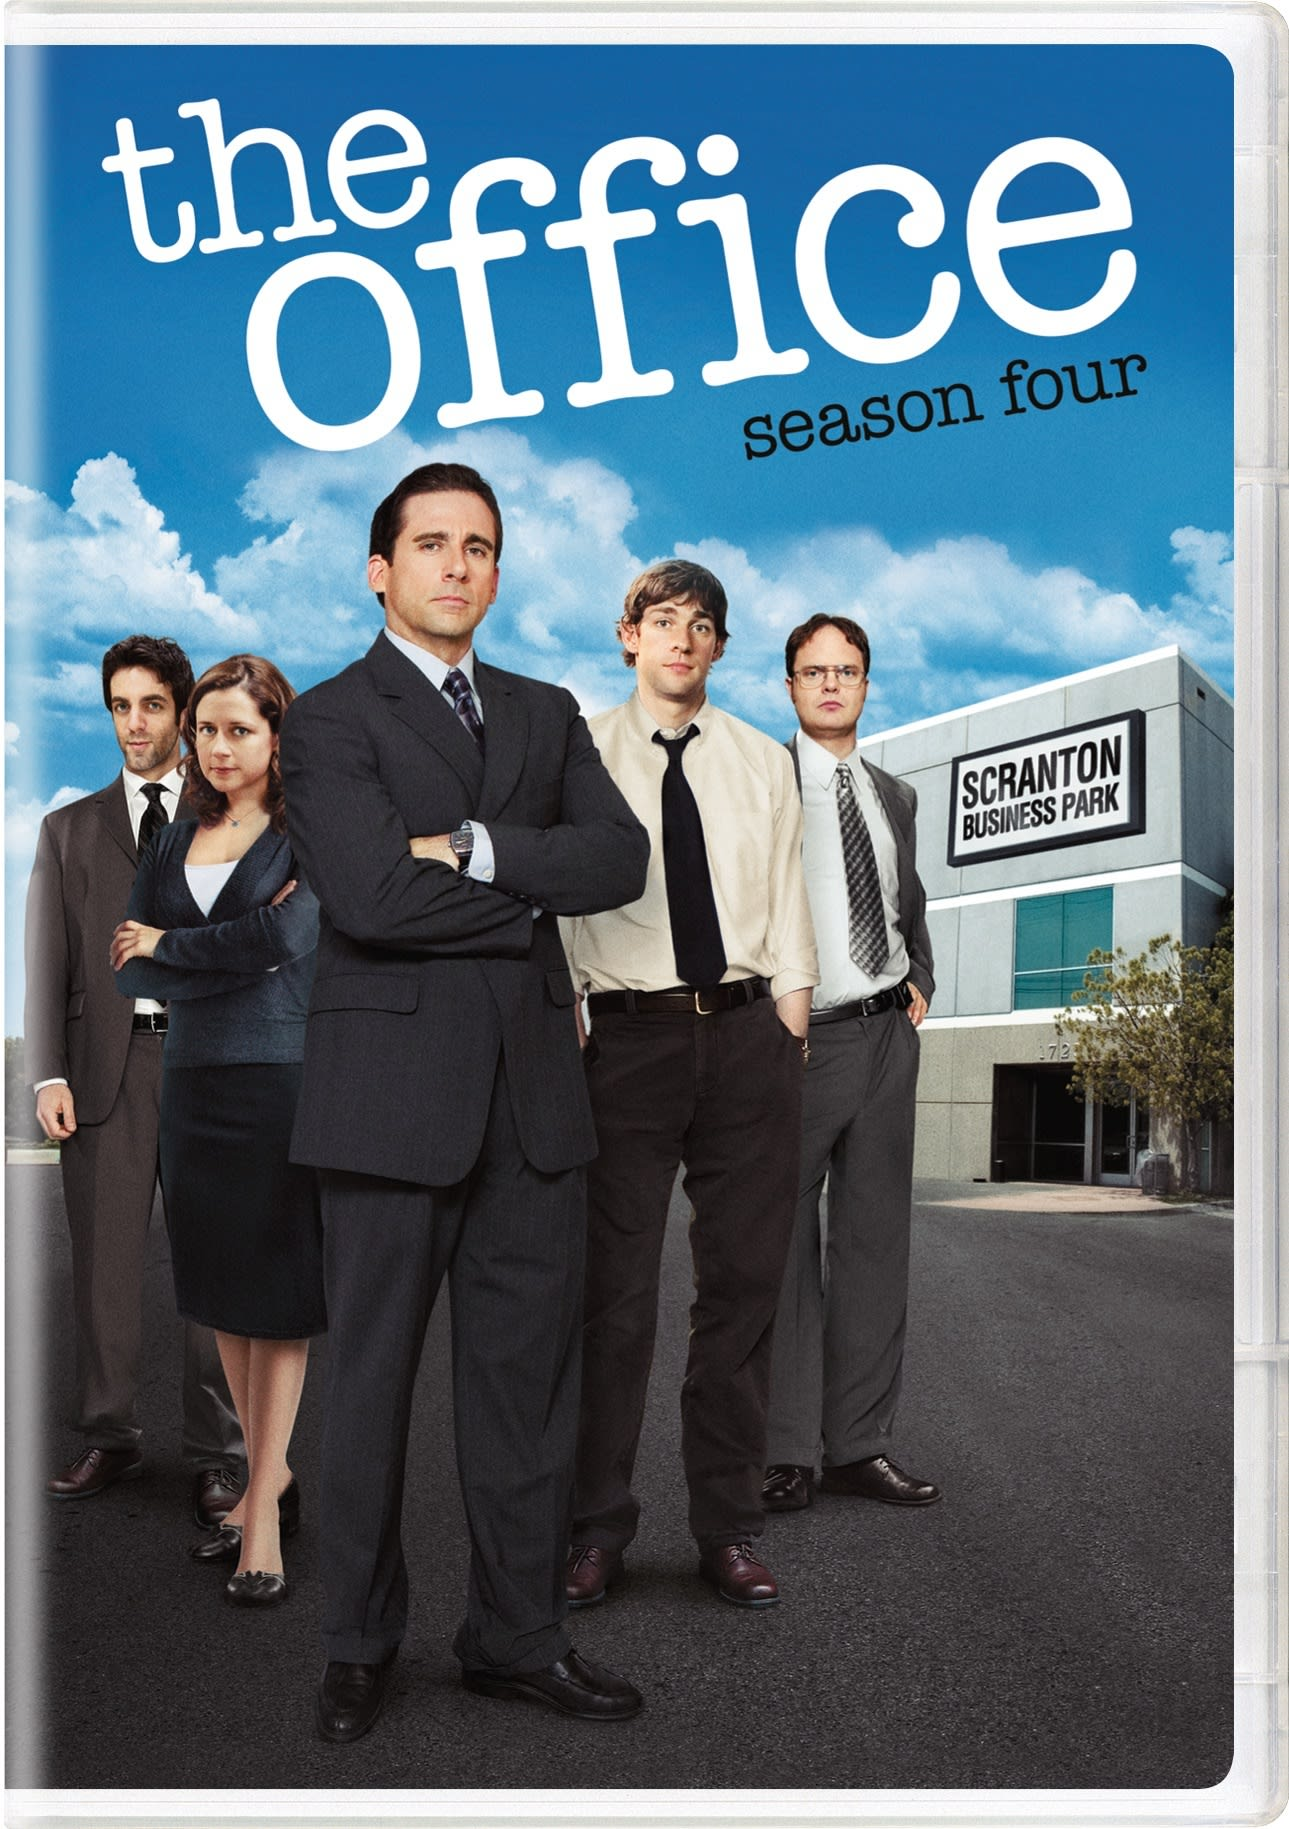 The Office - An American Workplace: Season 4 (2019) [DVD]